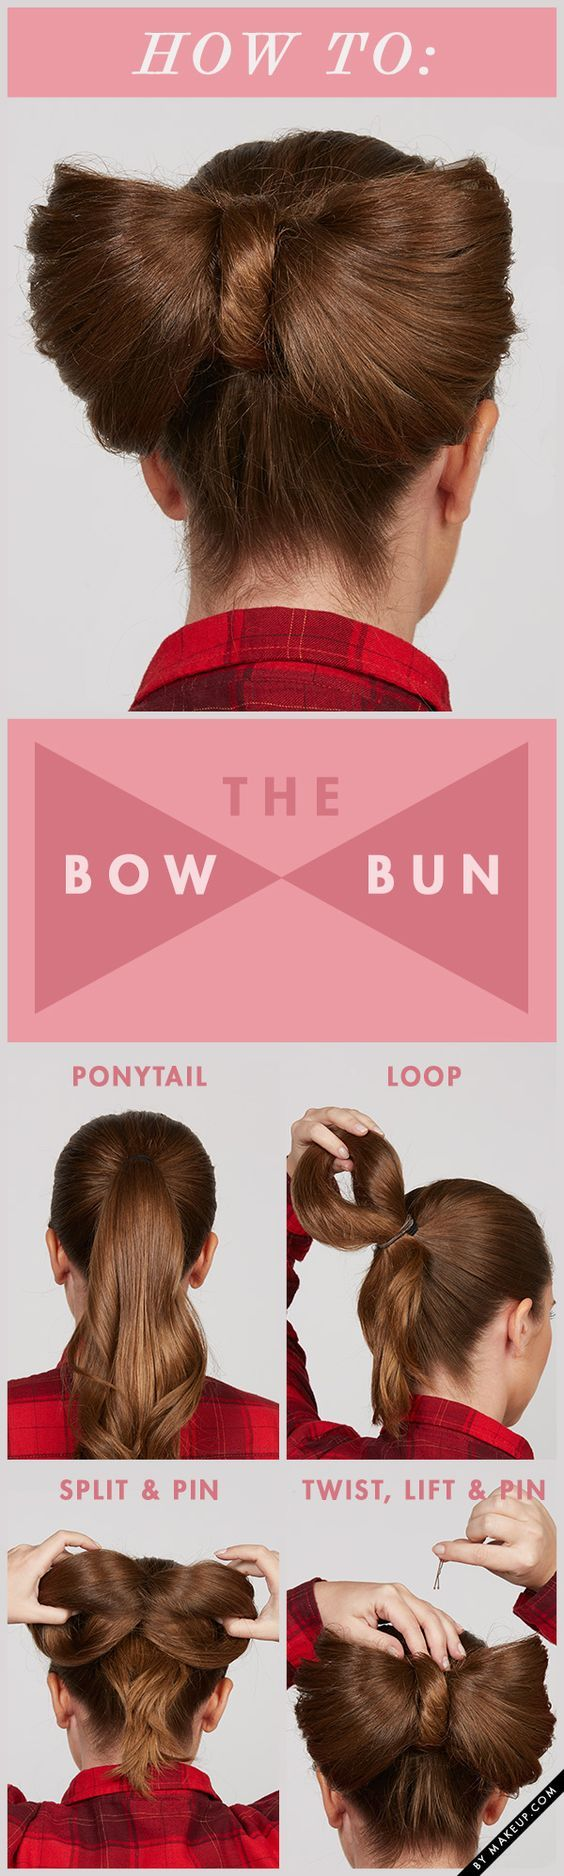 hair style bun 65 best bettie bangs images on betty bangs 7461 | 122eb7461ecc7eed34ff536206f6d6ce ballet hairstyles casual hairstyles